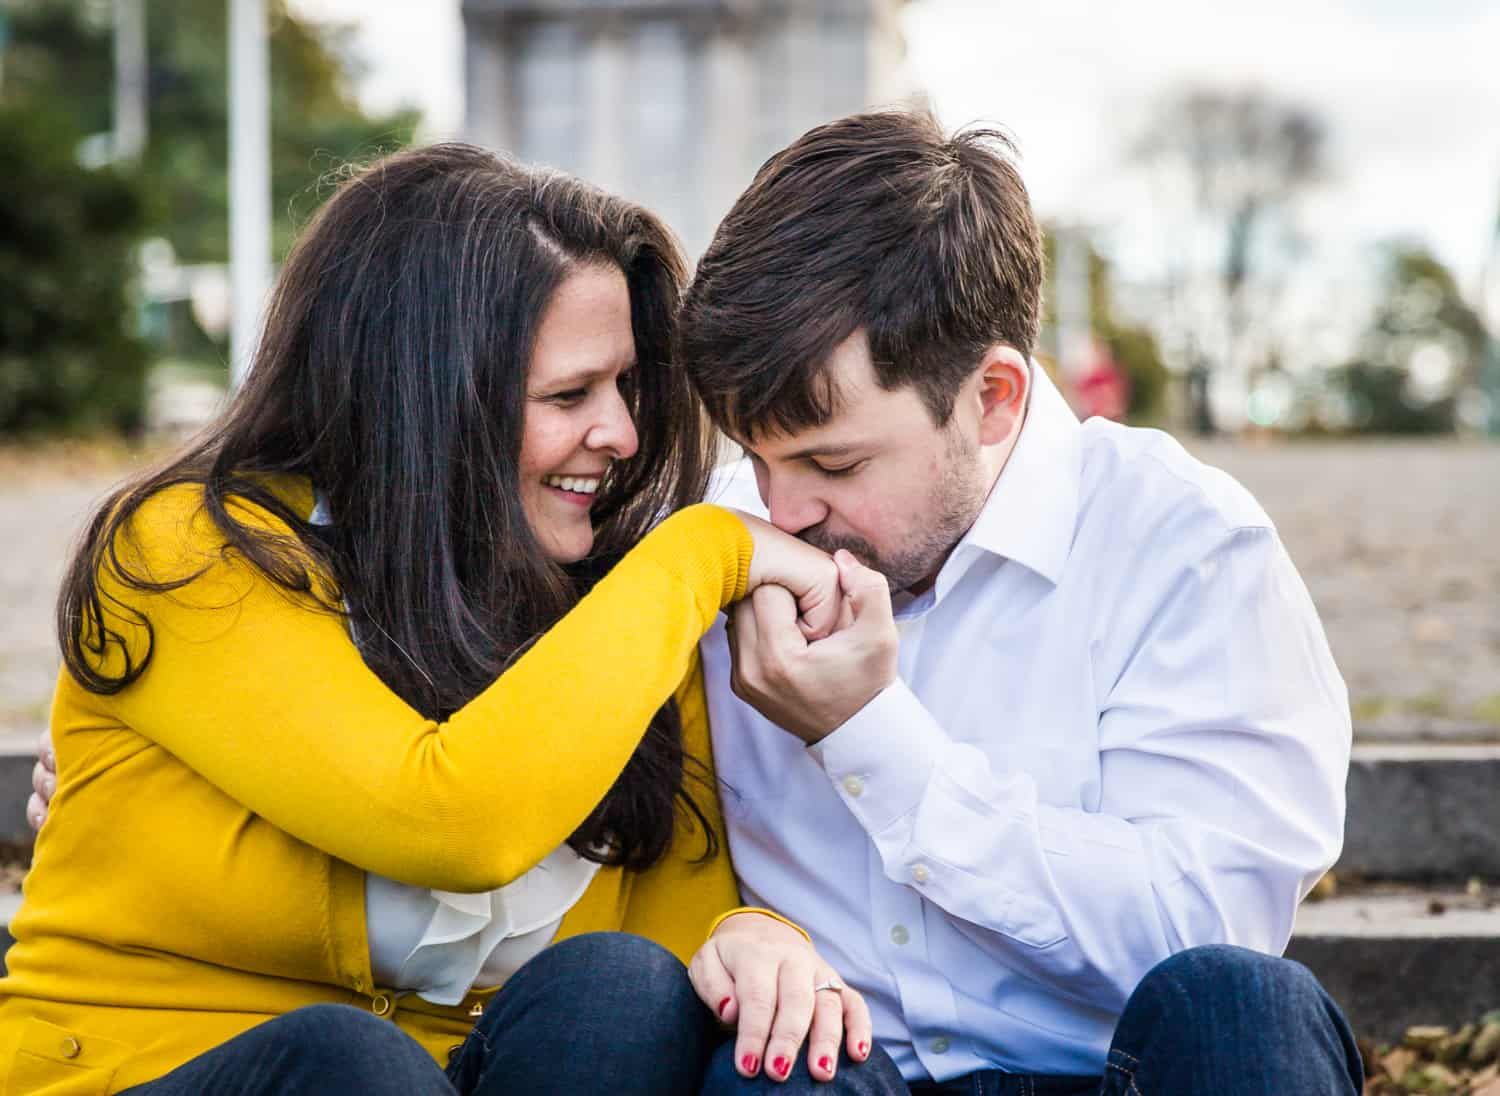 Grand Army Plaza engagement photos of man kissing woman's hand